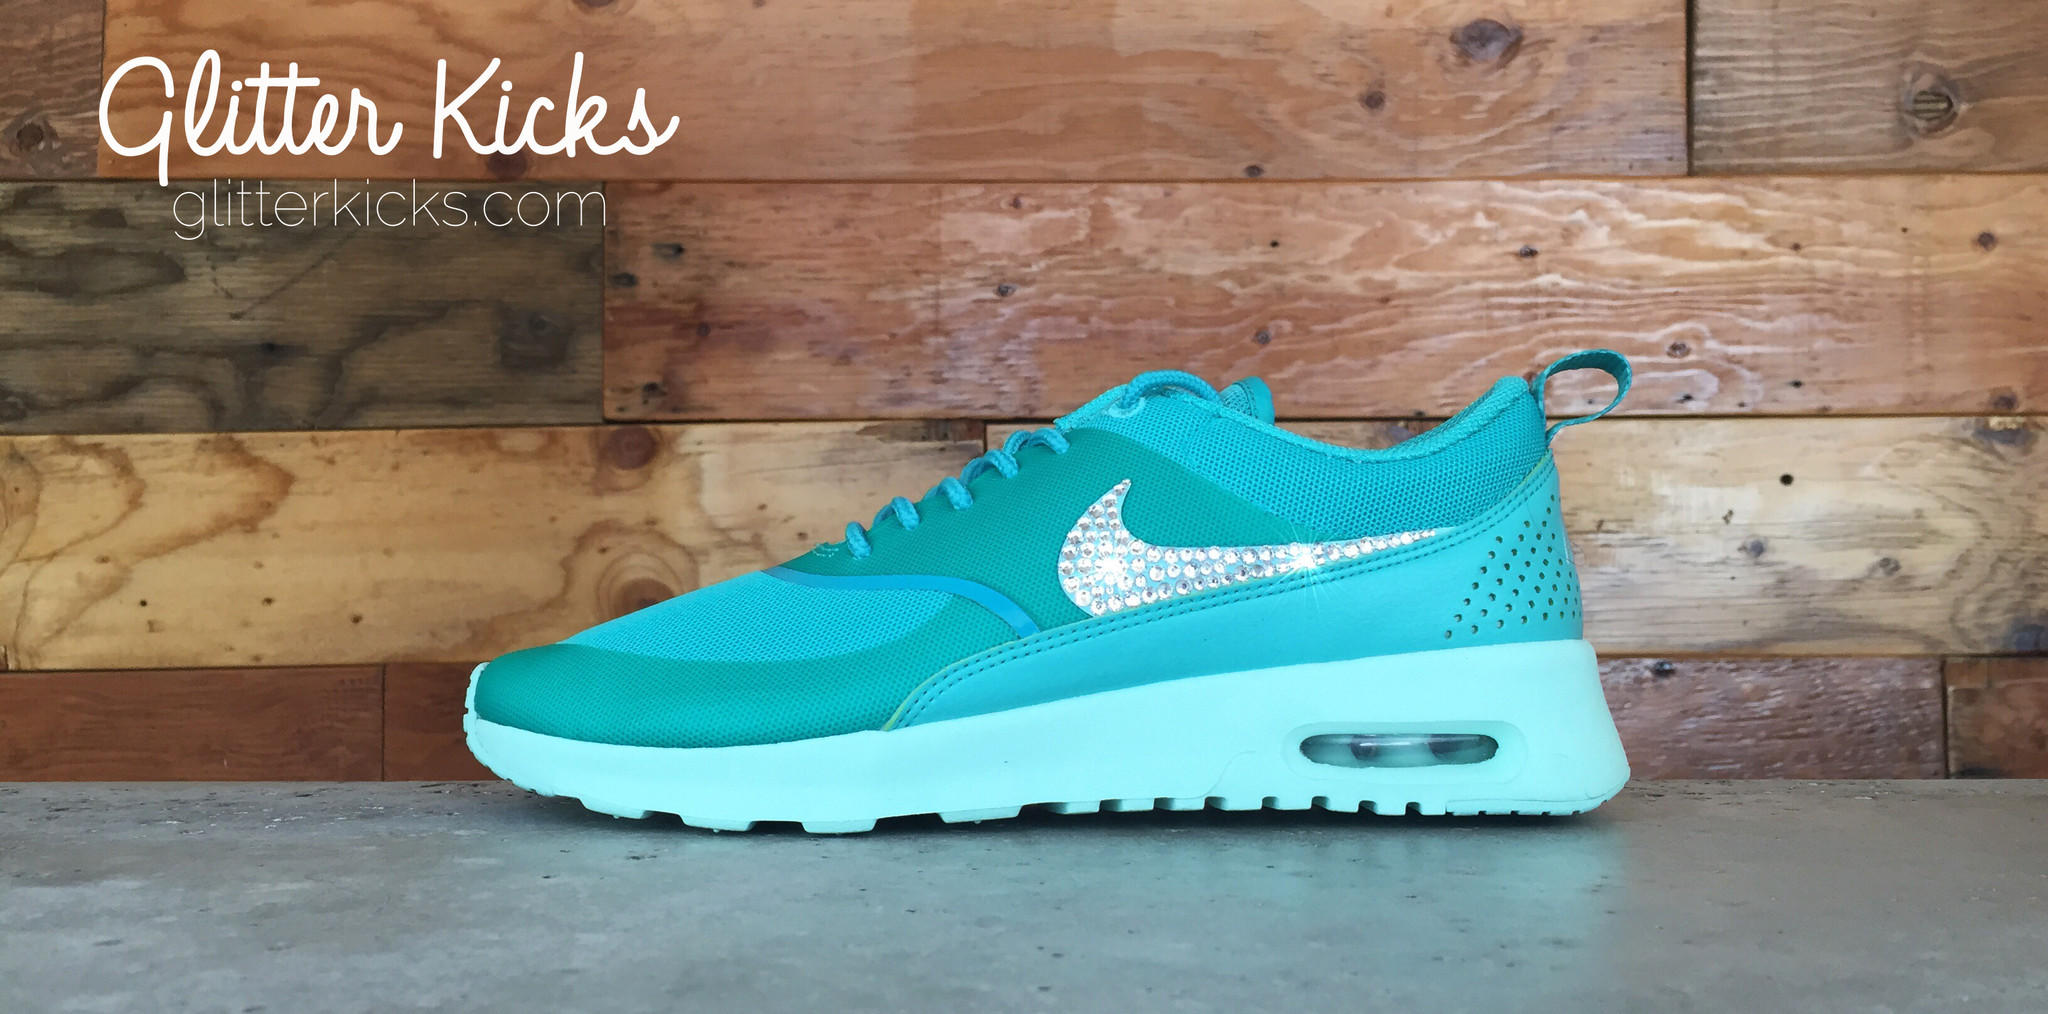 Nike Air Max Thea Running Shoes By from Glitter Kicks  e2fea62e9834